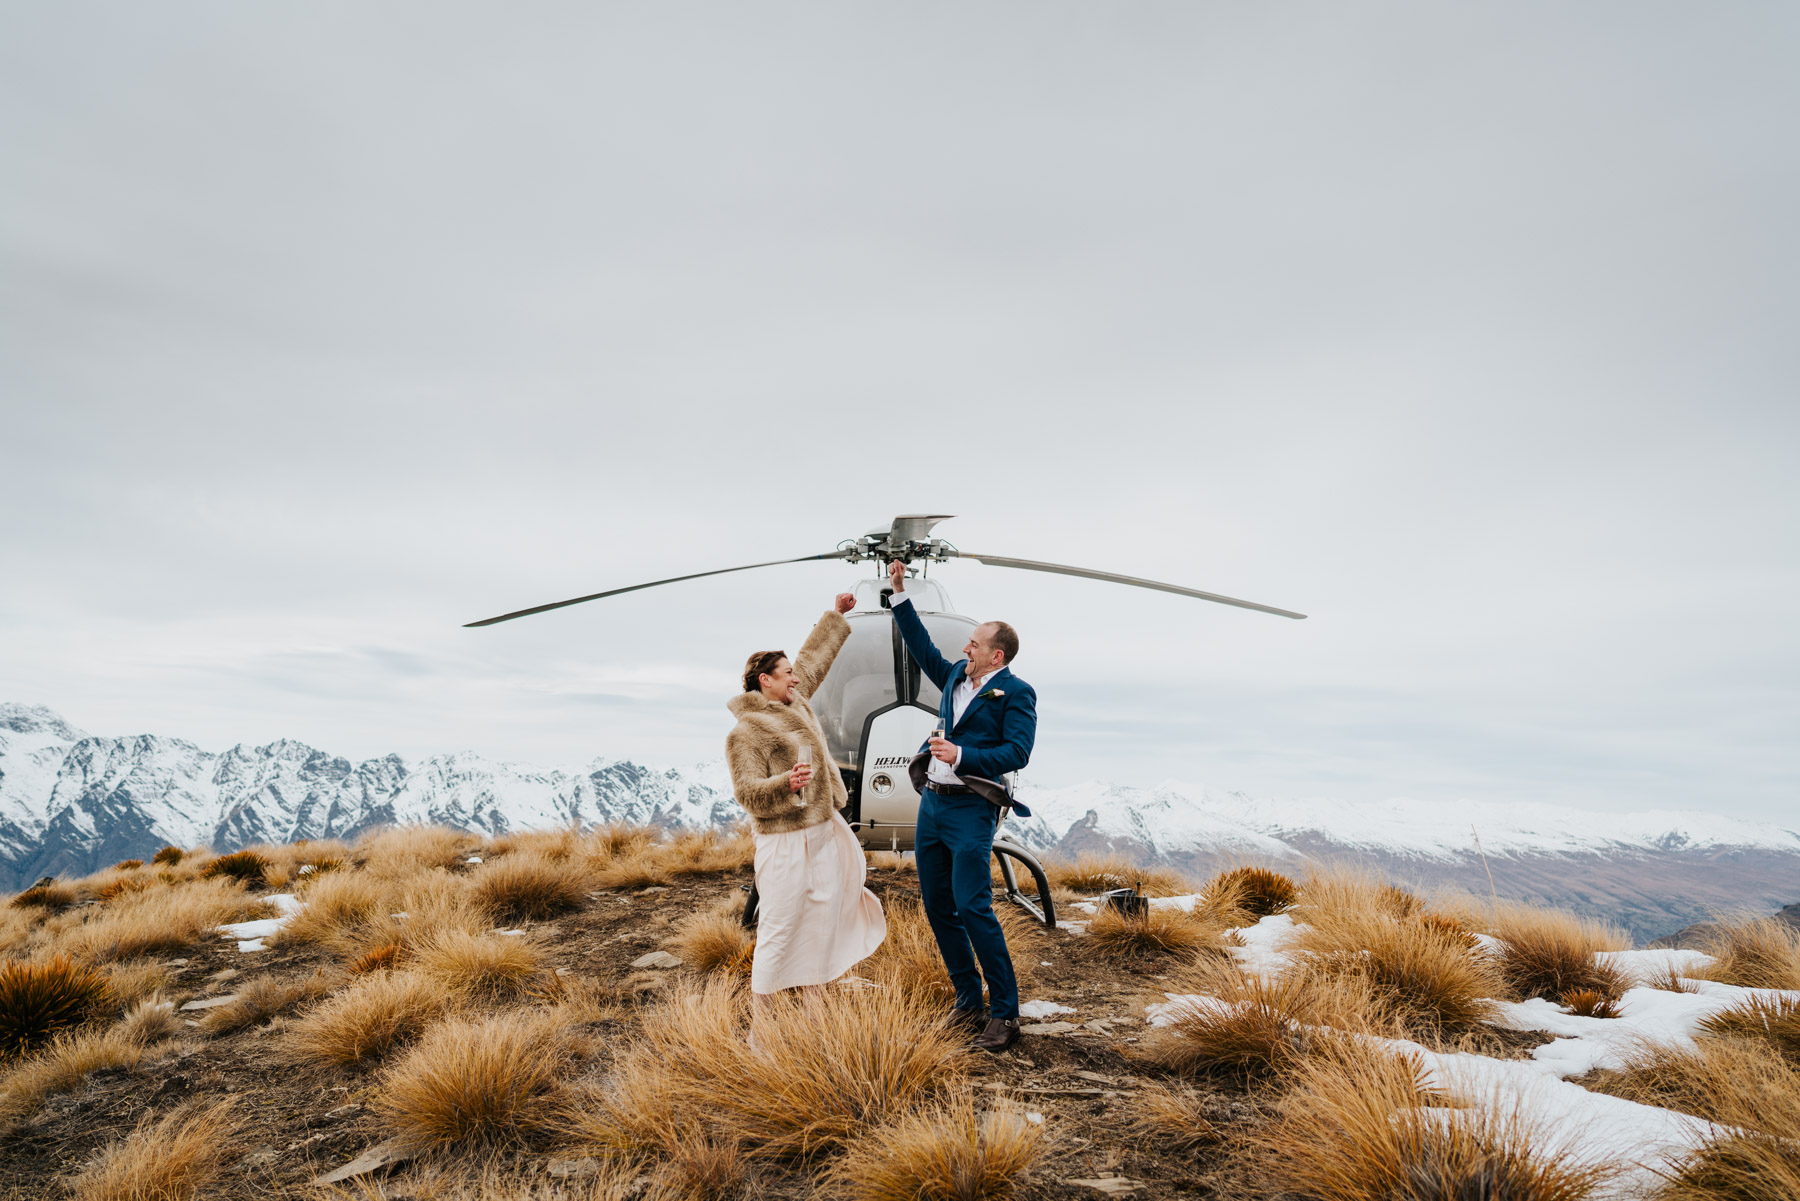 heli wedding planner Queenstown